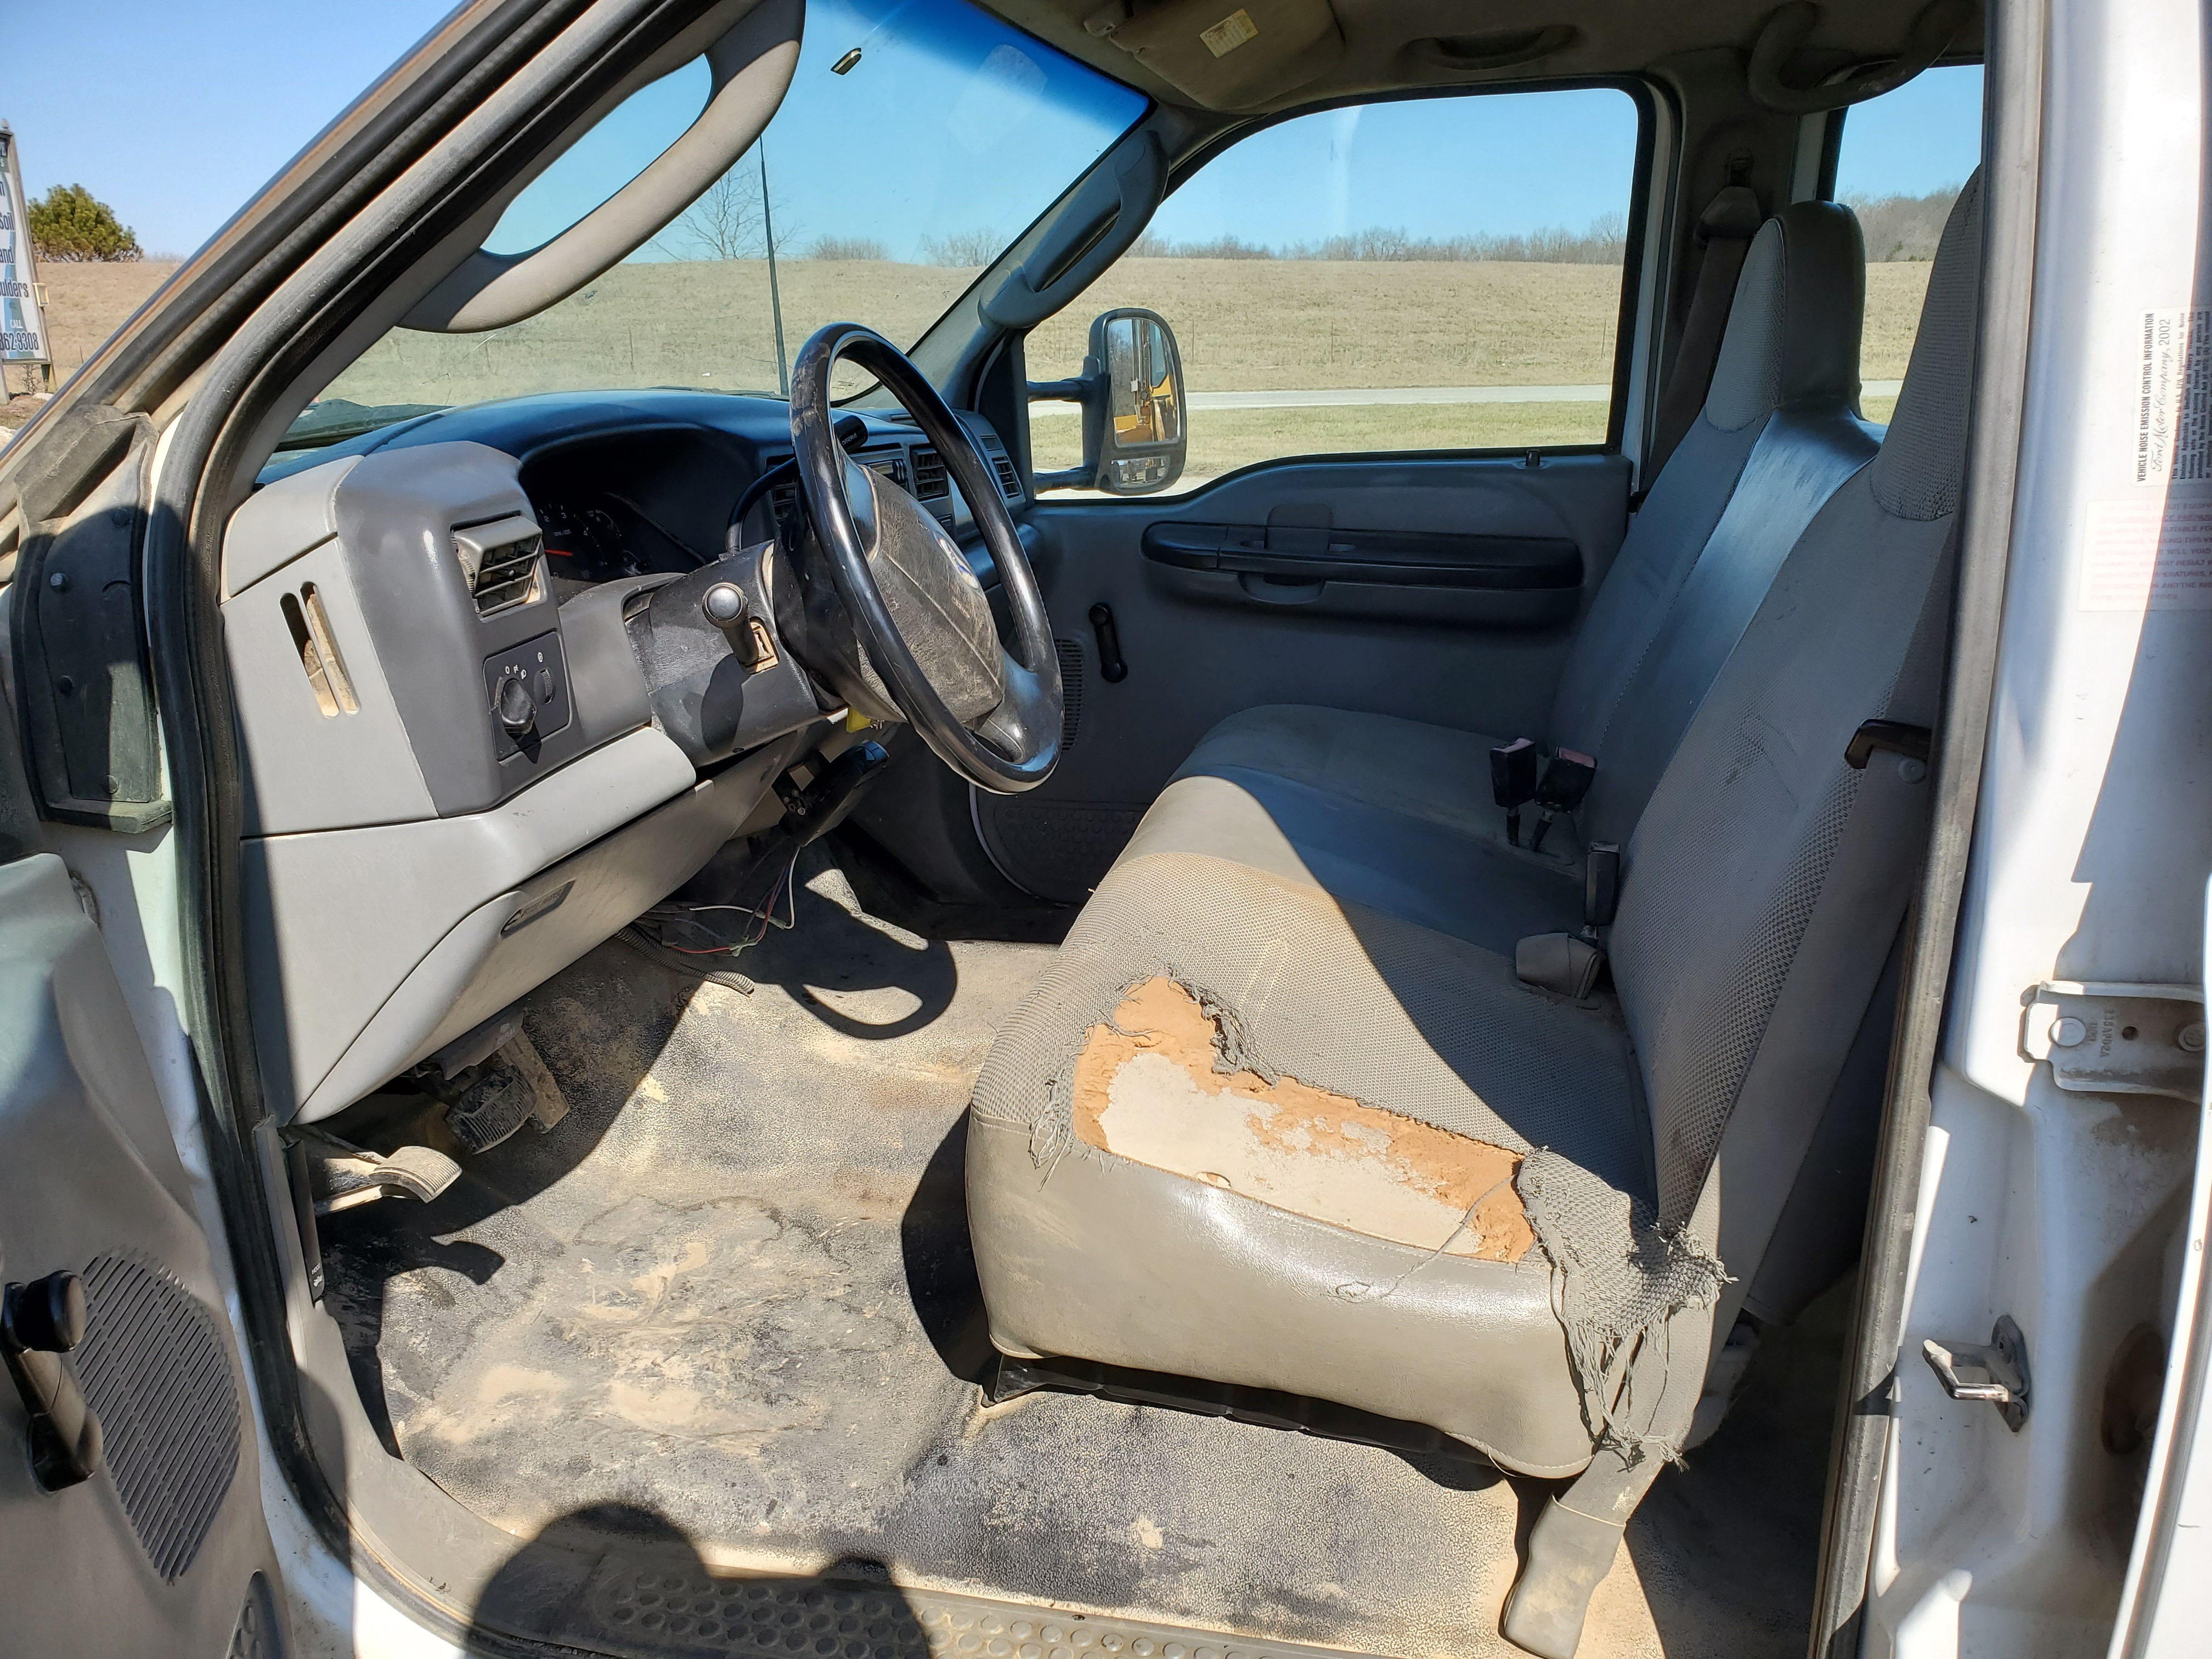 2003 F550 Ford Super Duty Pickup, Automatic, 7.3 Power Stroke Diesel, 8' Foot Omaha Flatbed - Image 11 of 18